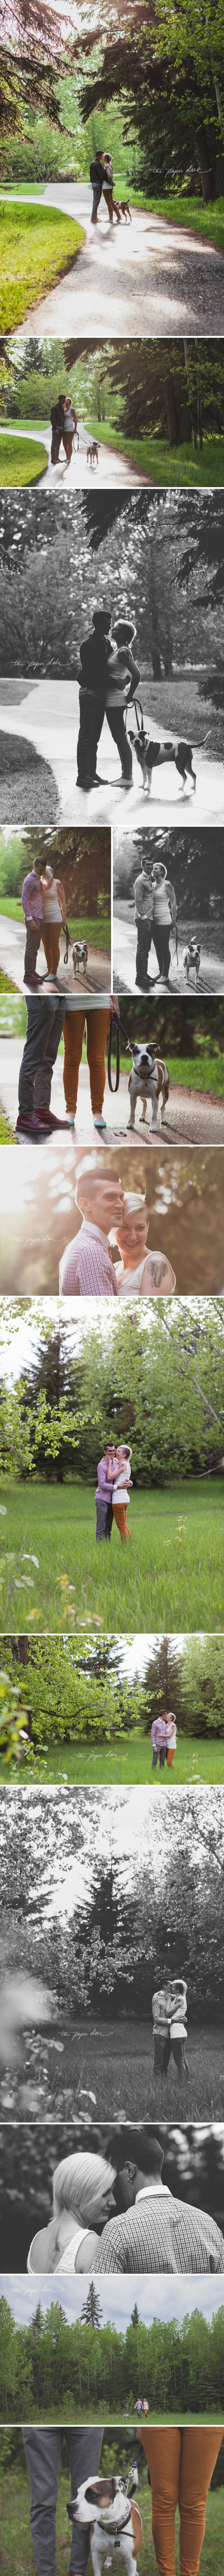 lifestyle engagements in the woods | ©The Paper Deer Photography | thepaperdeer.ca